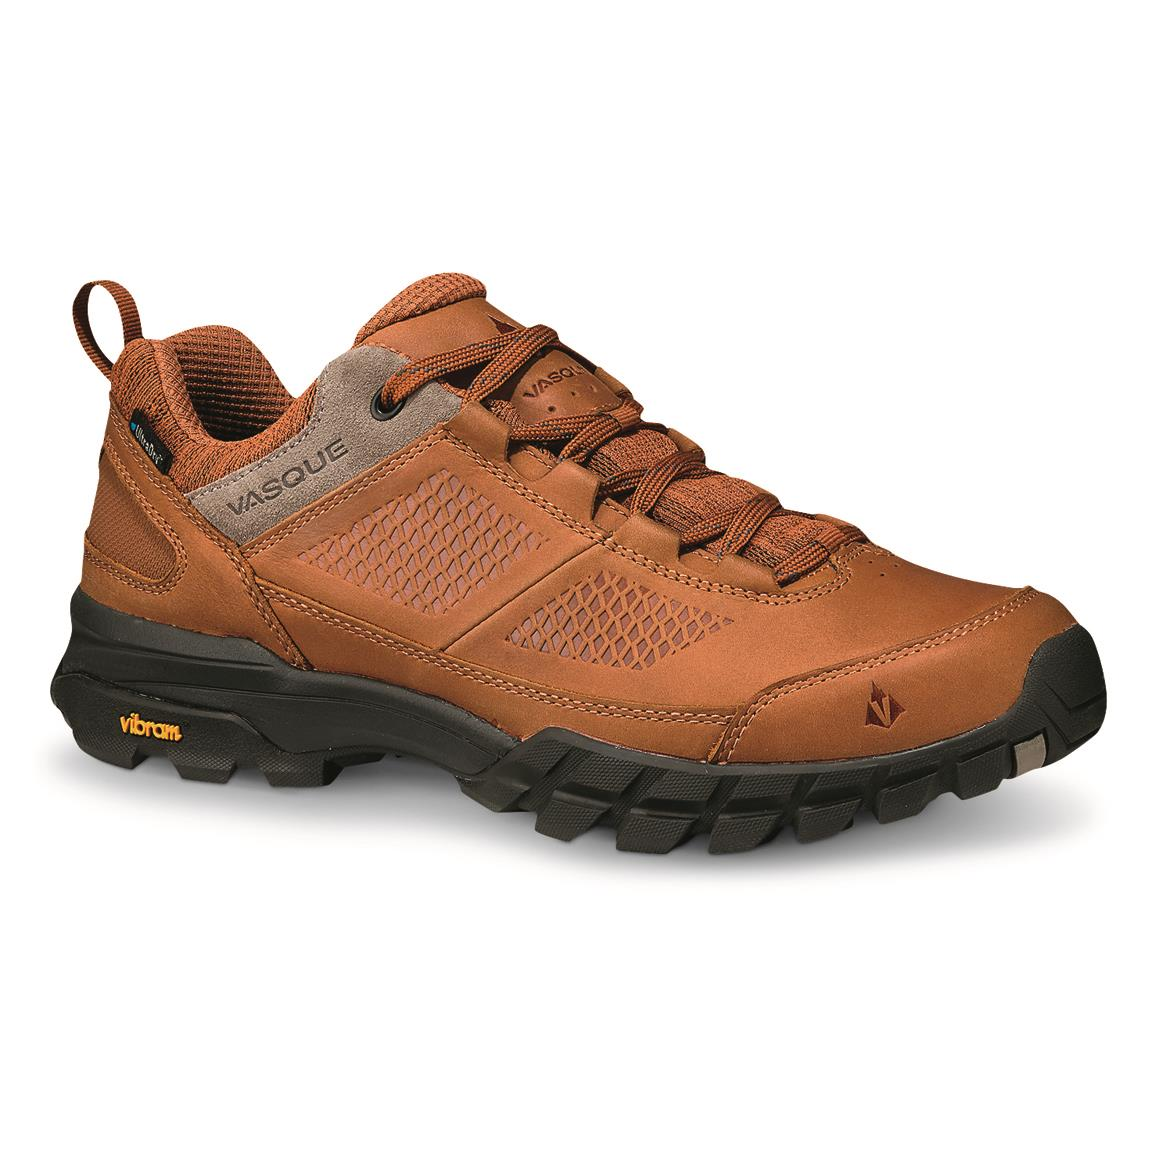 Vasque Men's Talus AT Ultradry Waterproof Hiking Shoes, Glazed Ginger/brindle